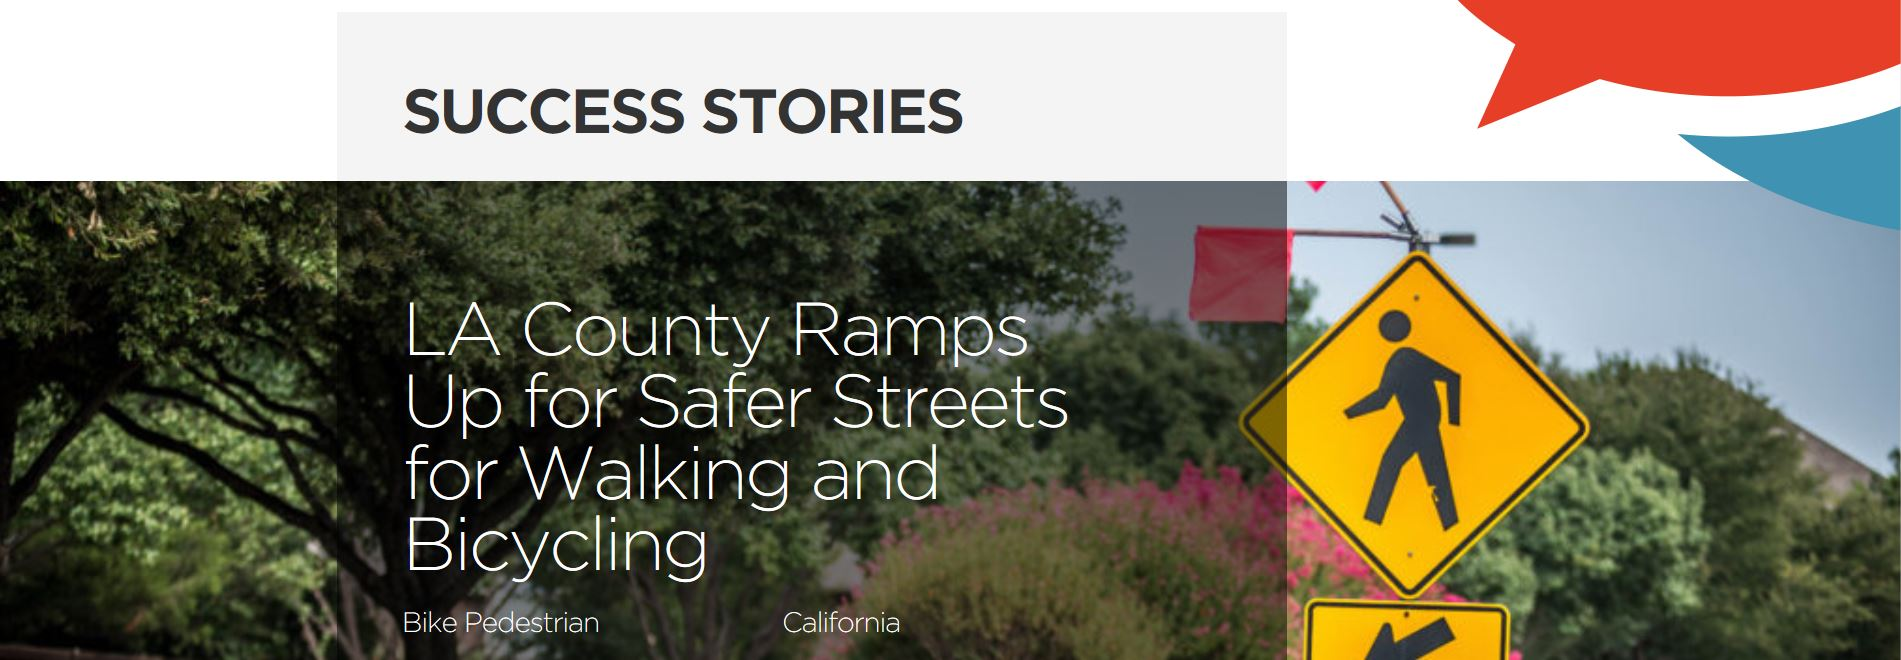 LA County Ramps Up for Safer Streets for Walking and Bicycling